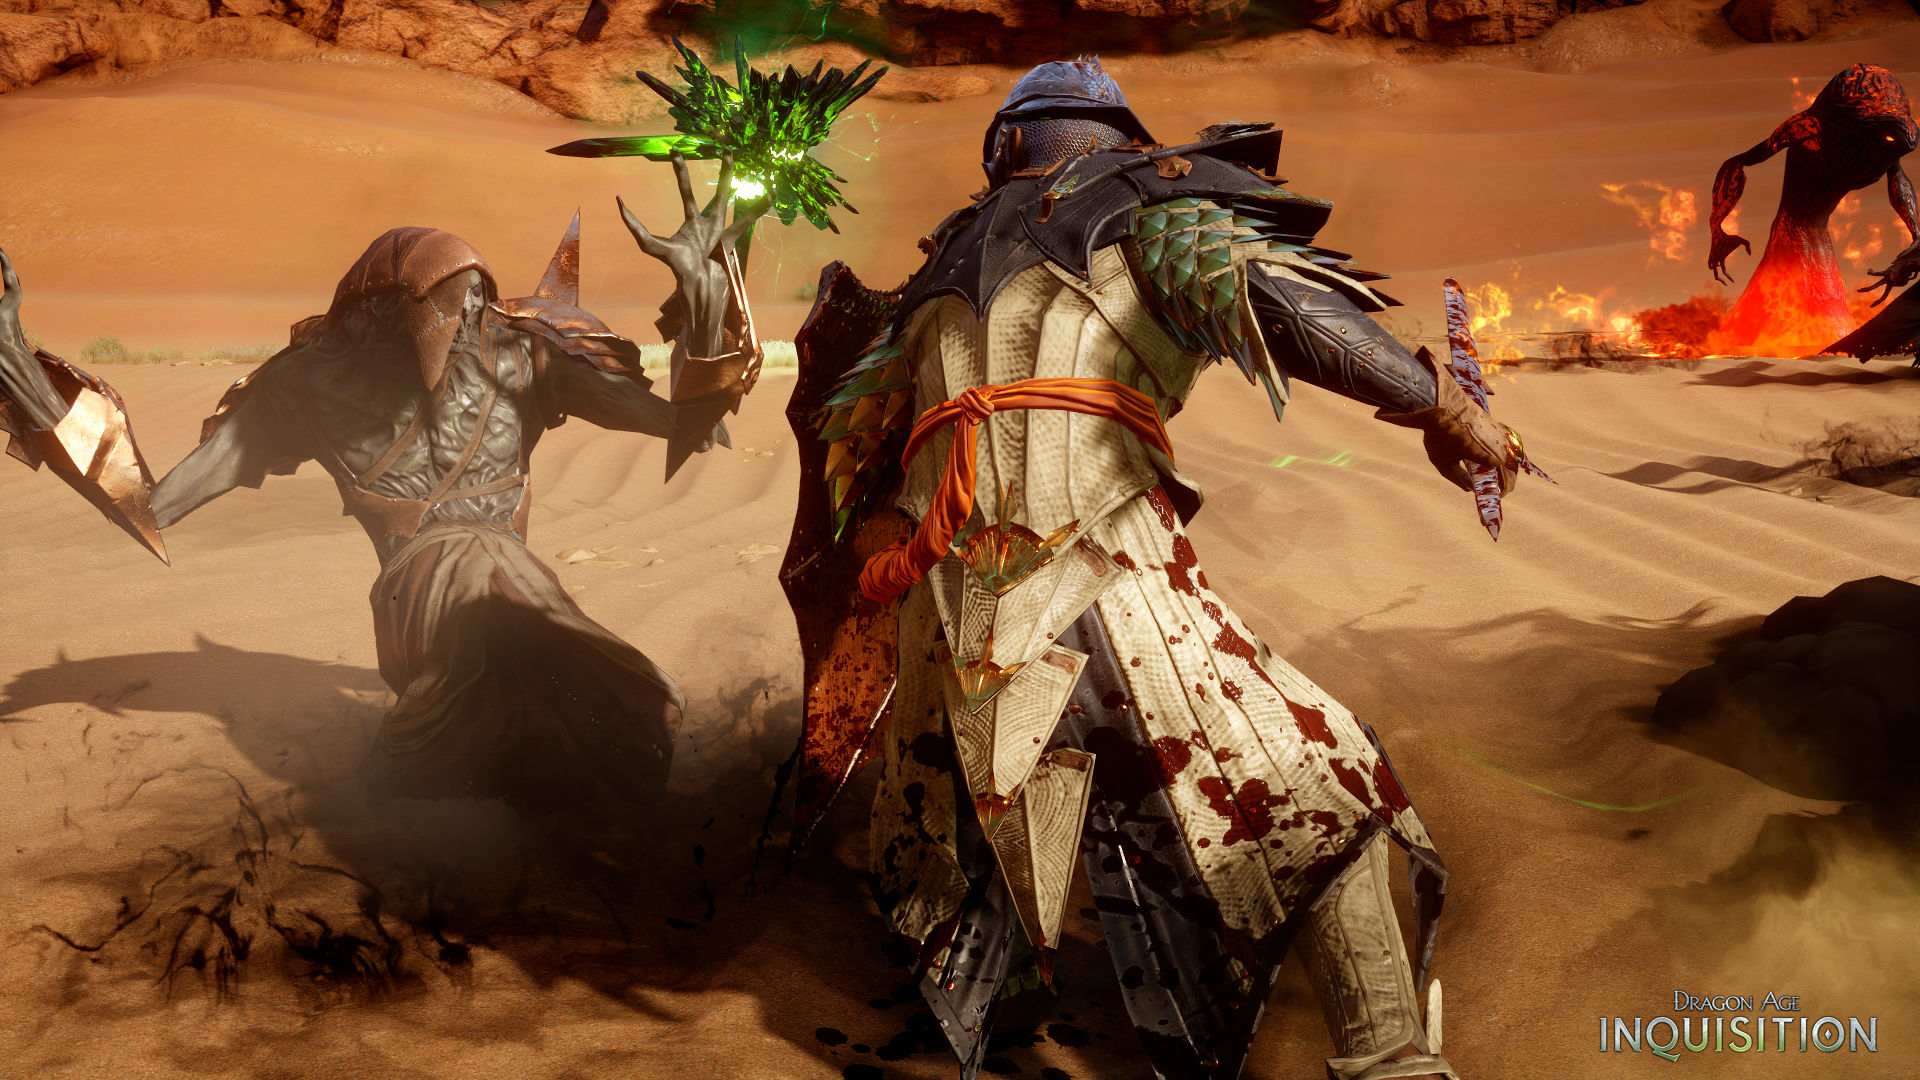 dragon_age_inquisition_desert_fight